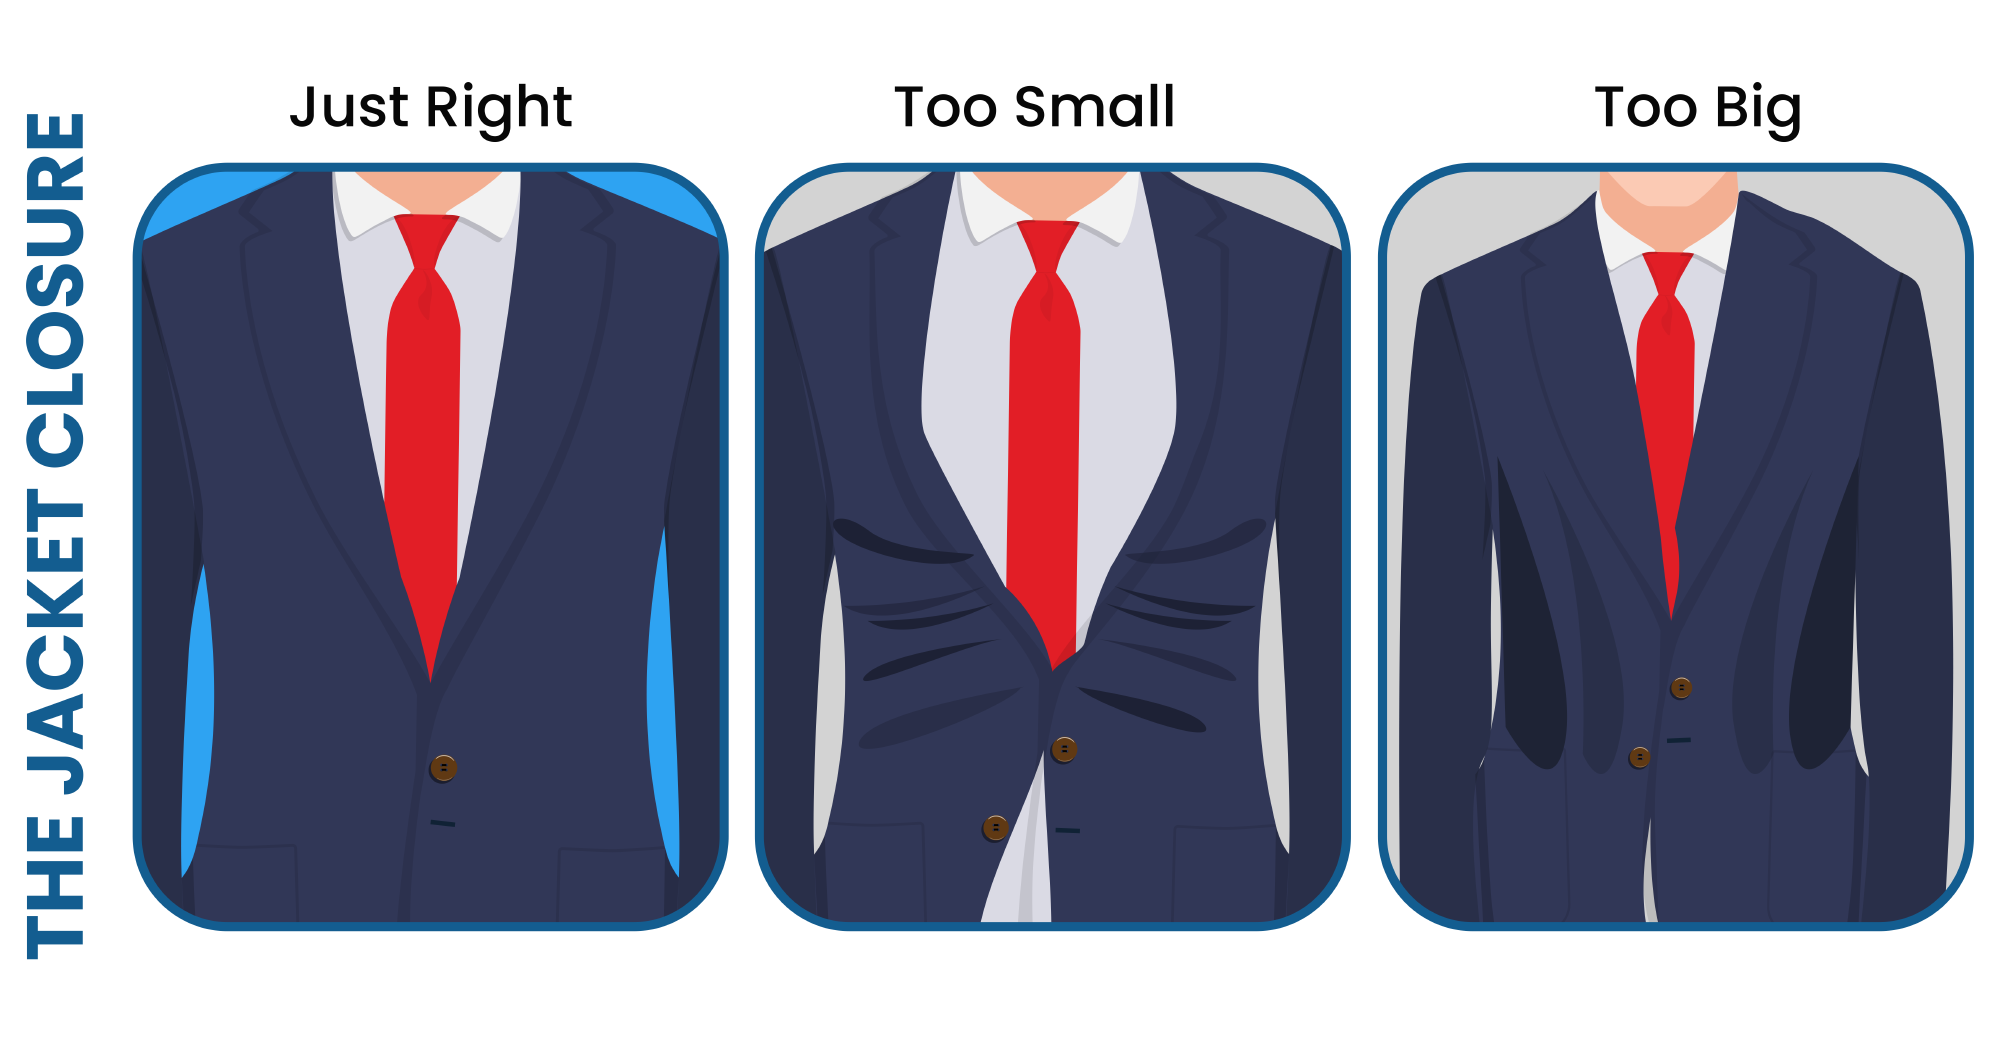 The jacket closure is paramount for a good suit fit